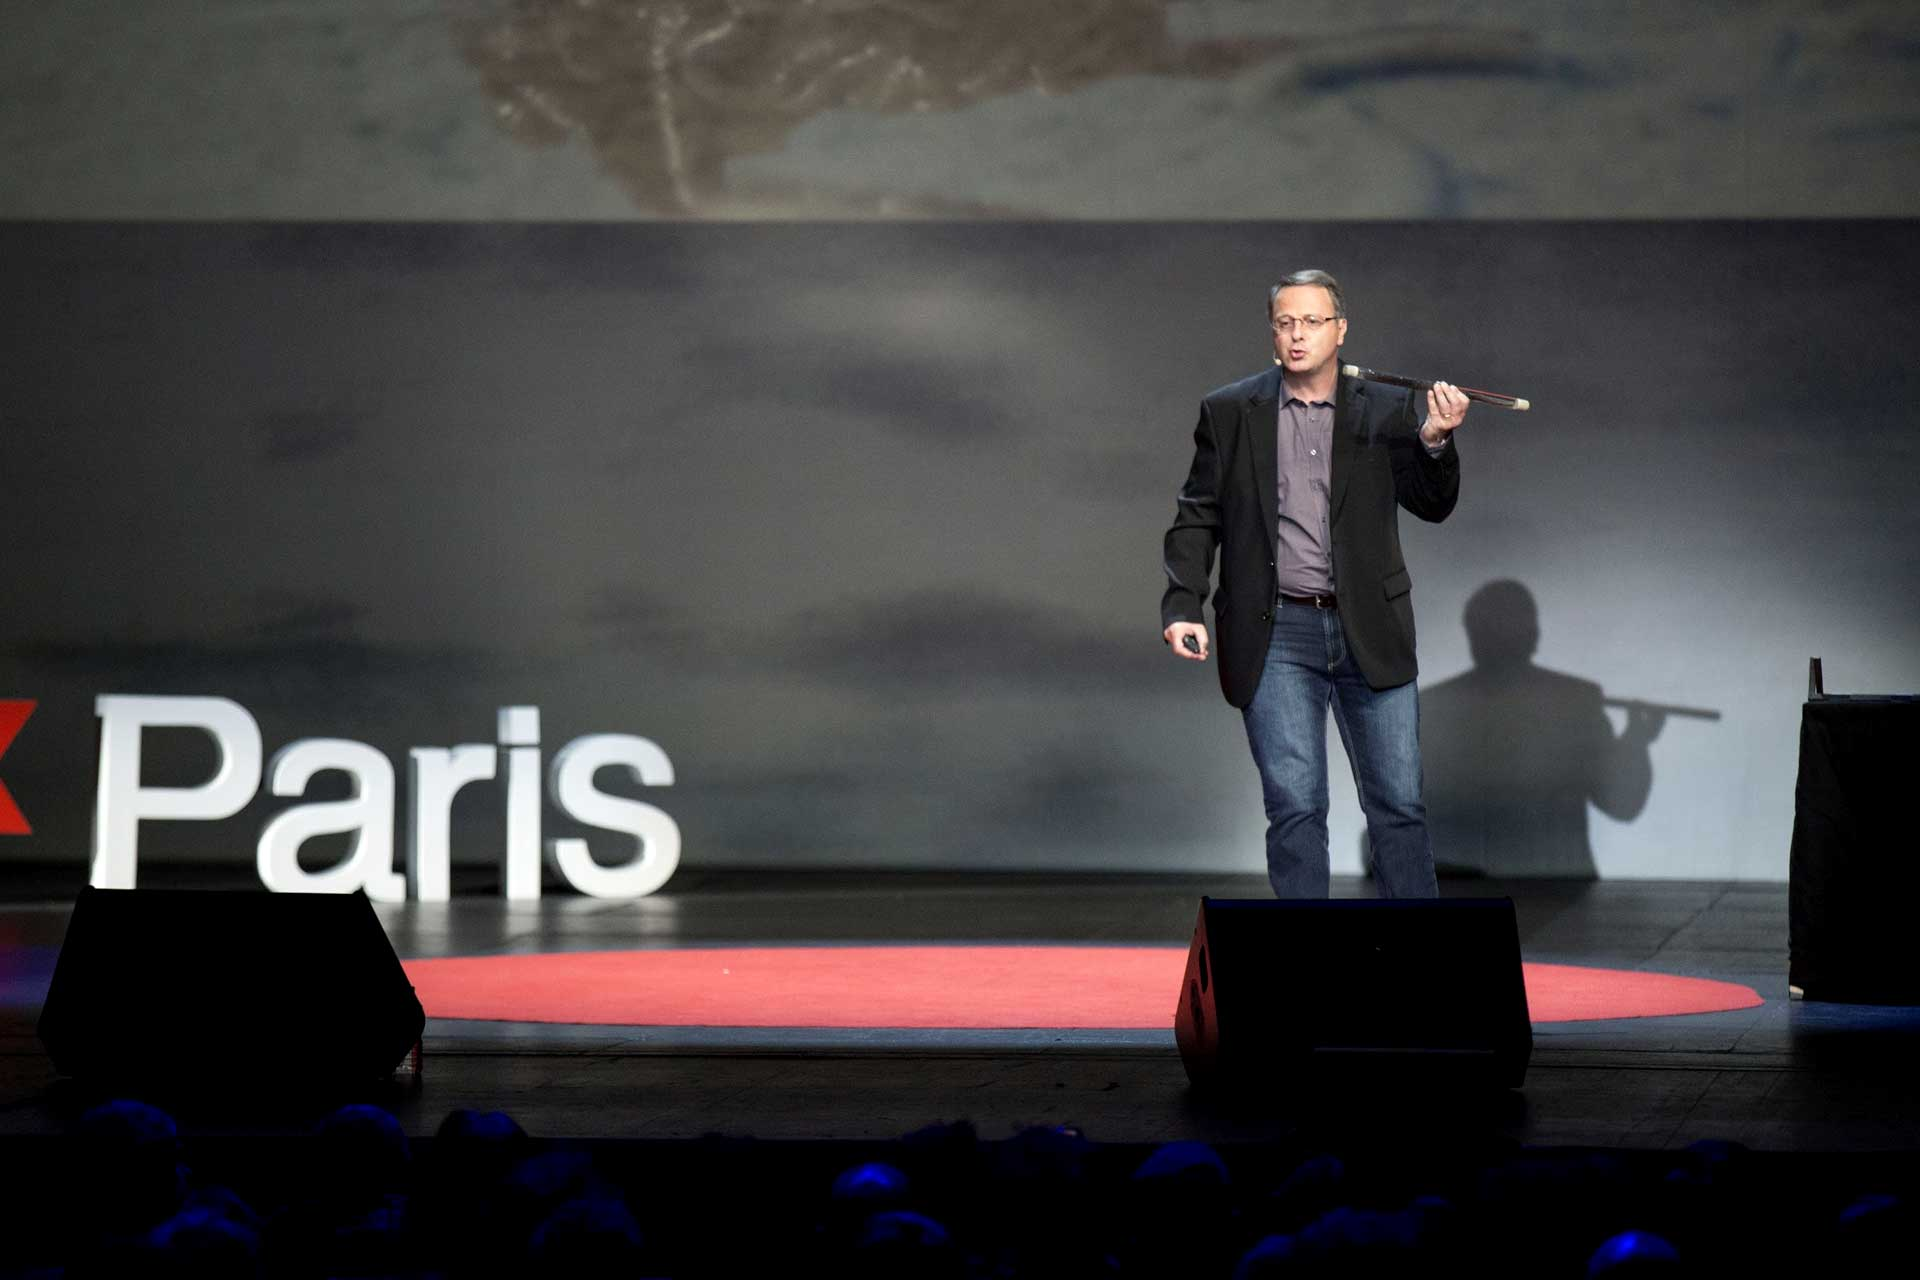 conference-TEDxParis-2014-24.jpg